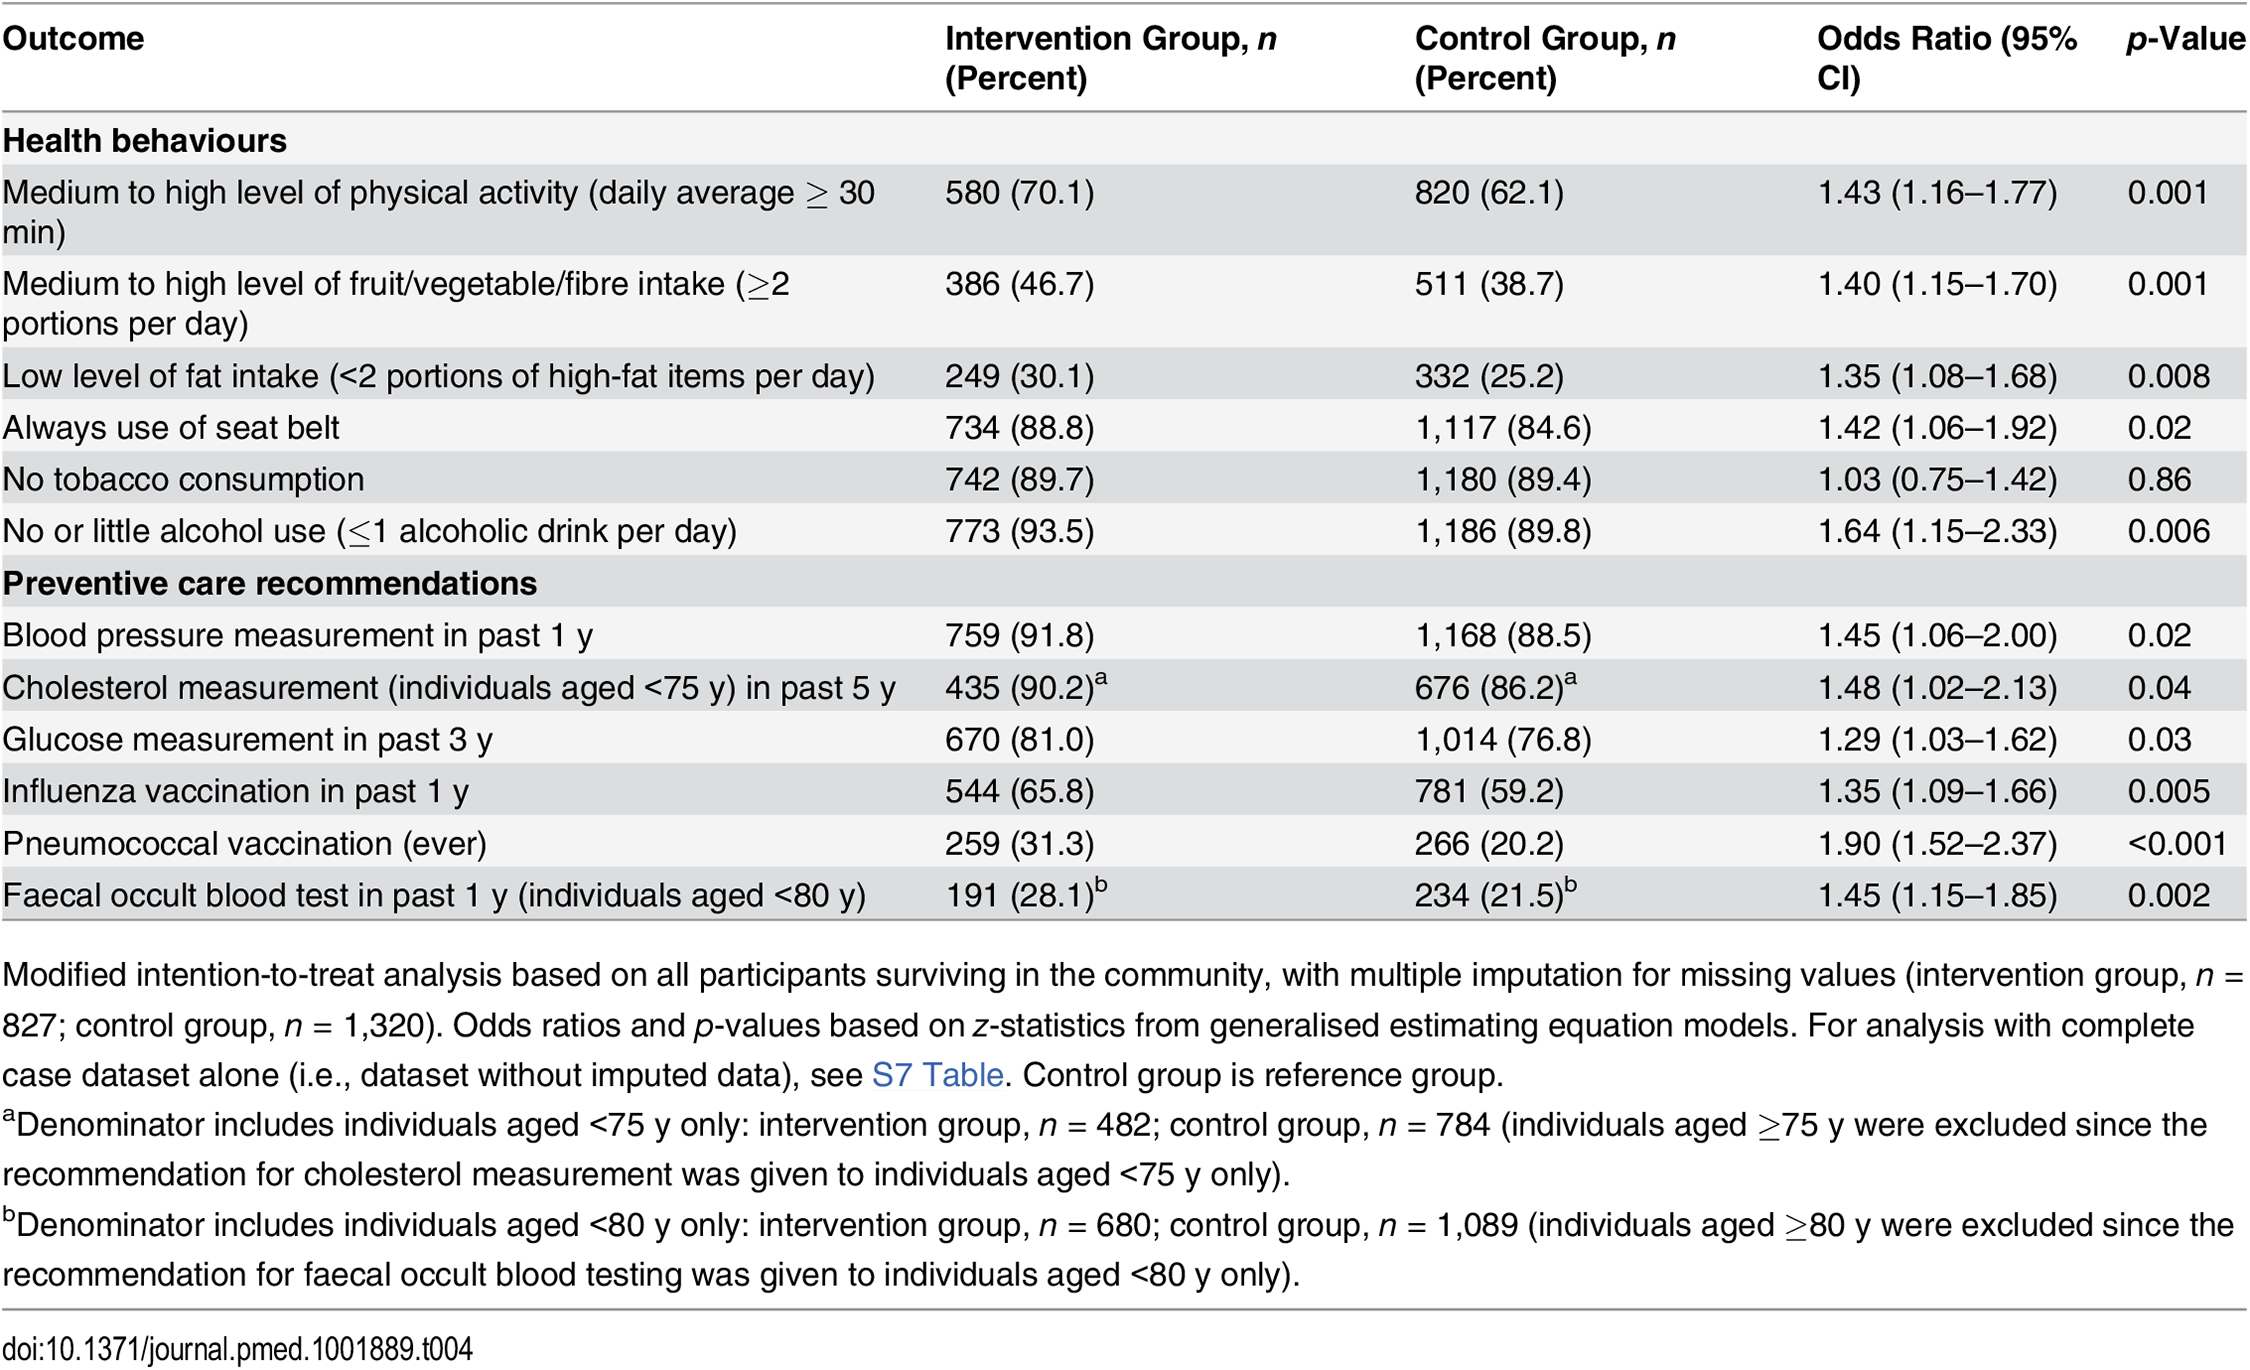 Primary outcomes at 2-y follow-up: health behaviours and adherence to preventive care recommendations.